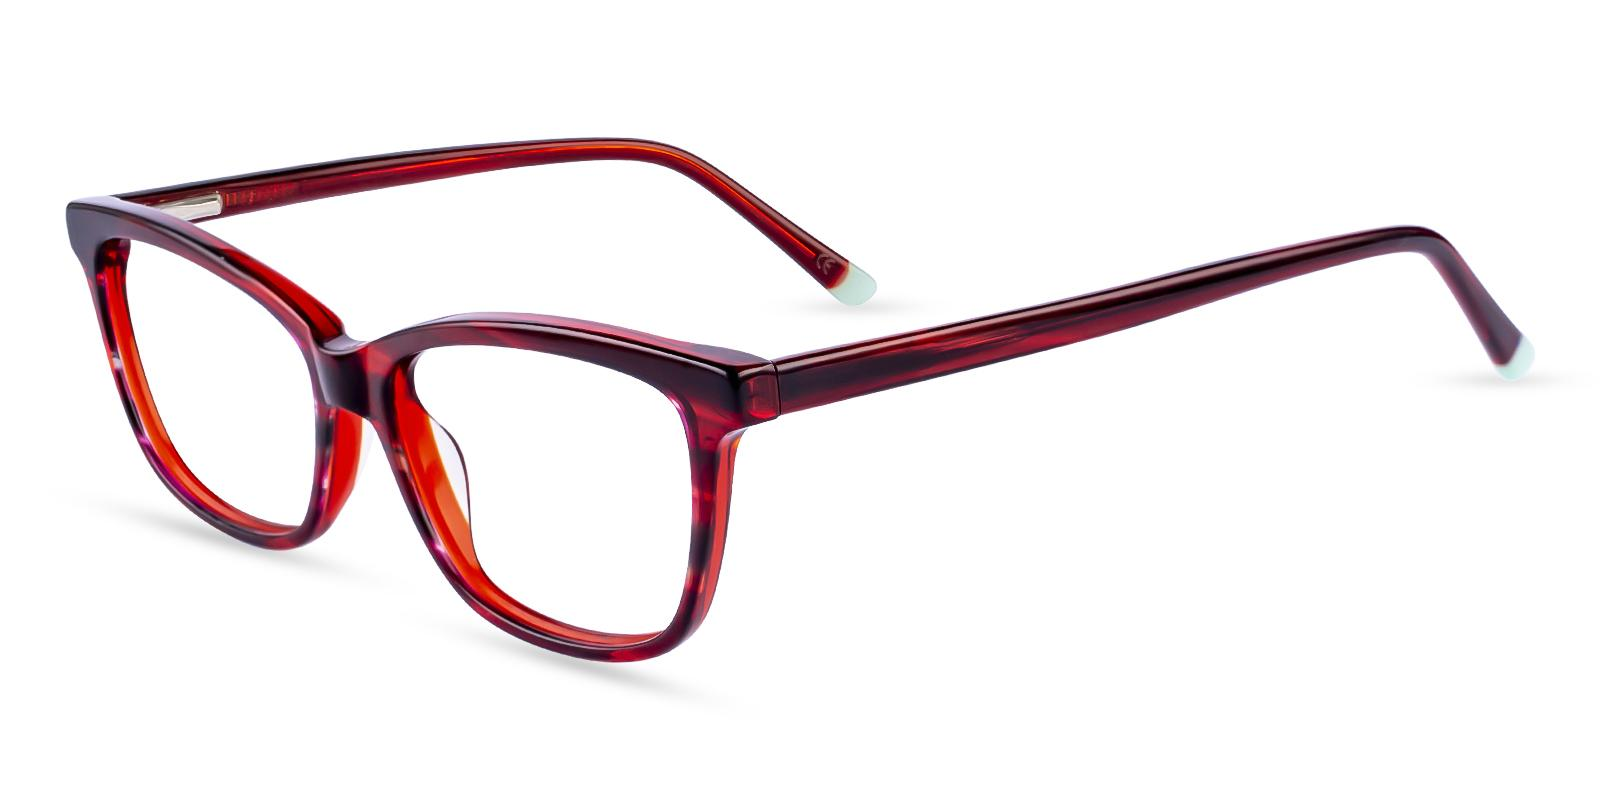 Zion Red Acetate Eyeglasses , SpringHinges , UniversalBridgeFit Frames from ABBE Glasses